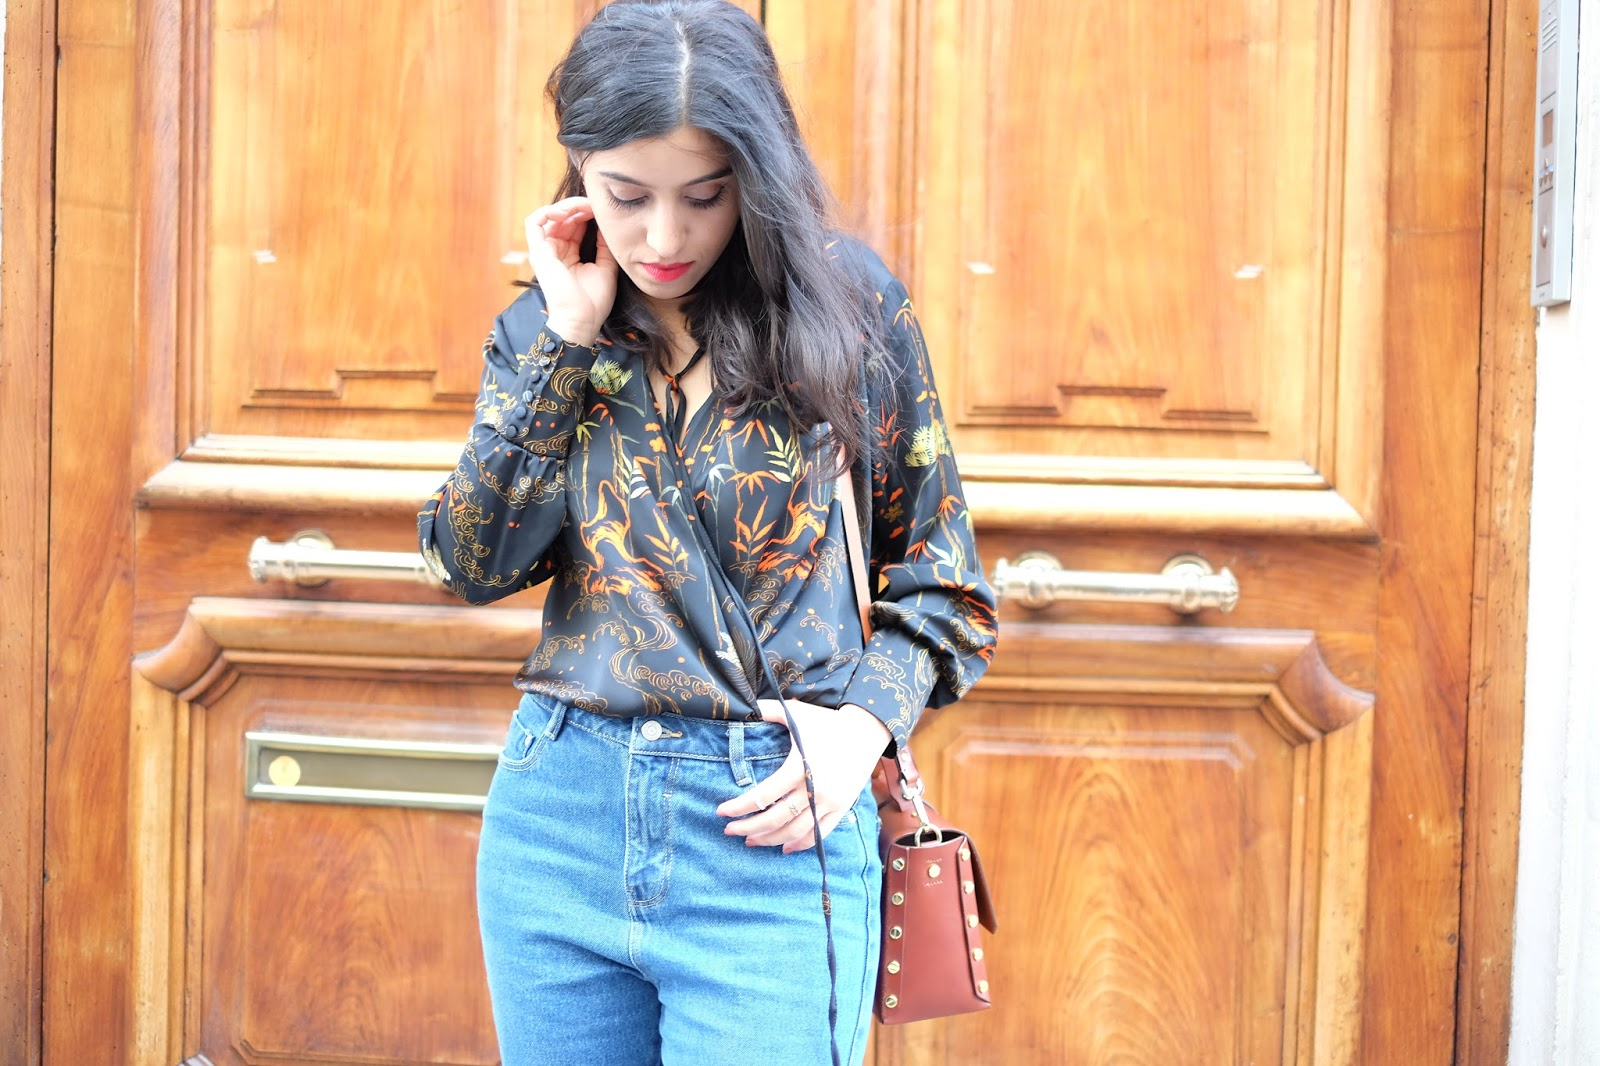 blog mode, blogueuse mode, blog mode lyon, modeuse, amenidaily, sac sandro, french blogger, jean mom, mom jean